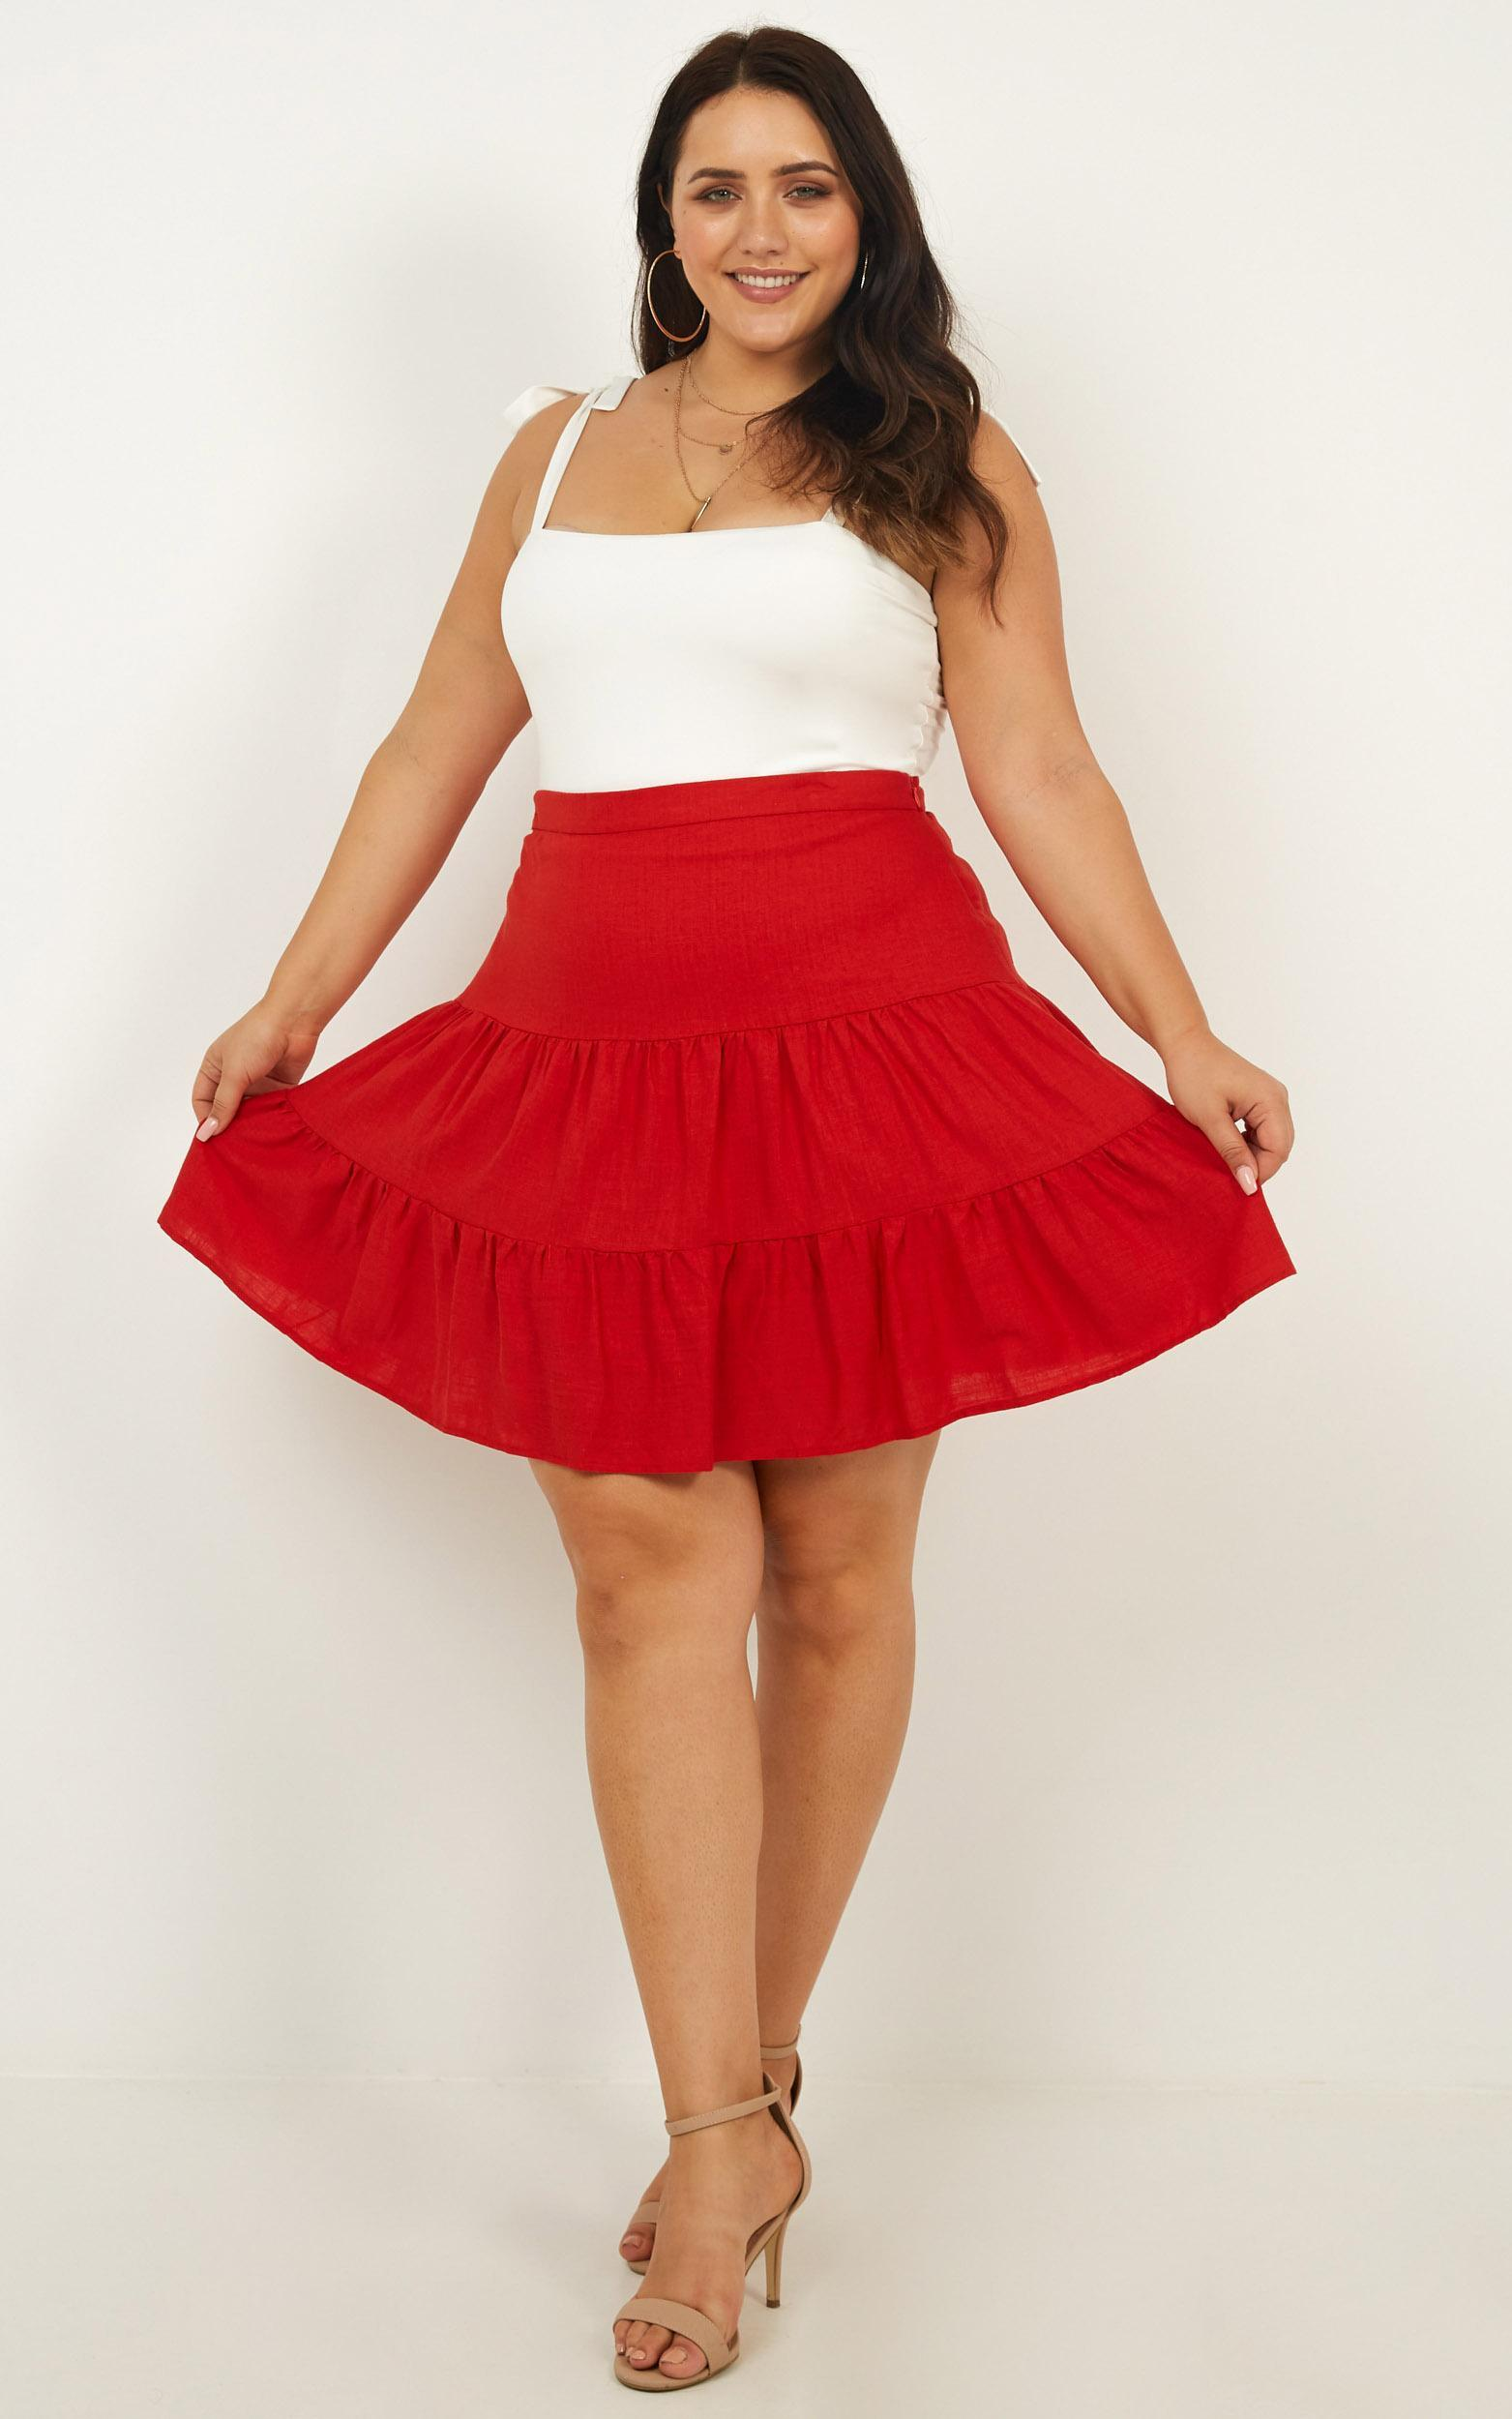 Summer Ready Skirt in red linen look - 12 (L), Red, hi-res image number null